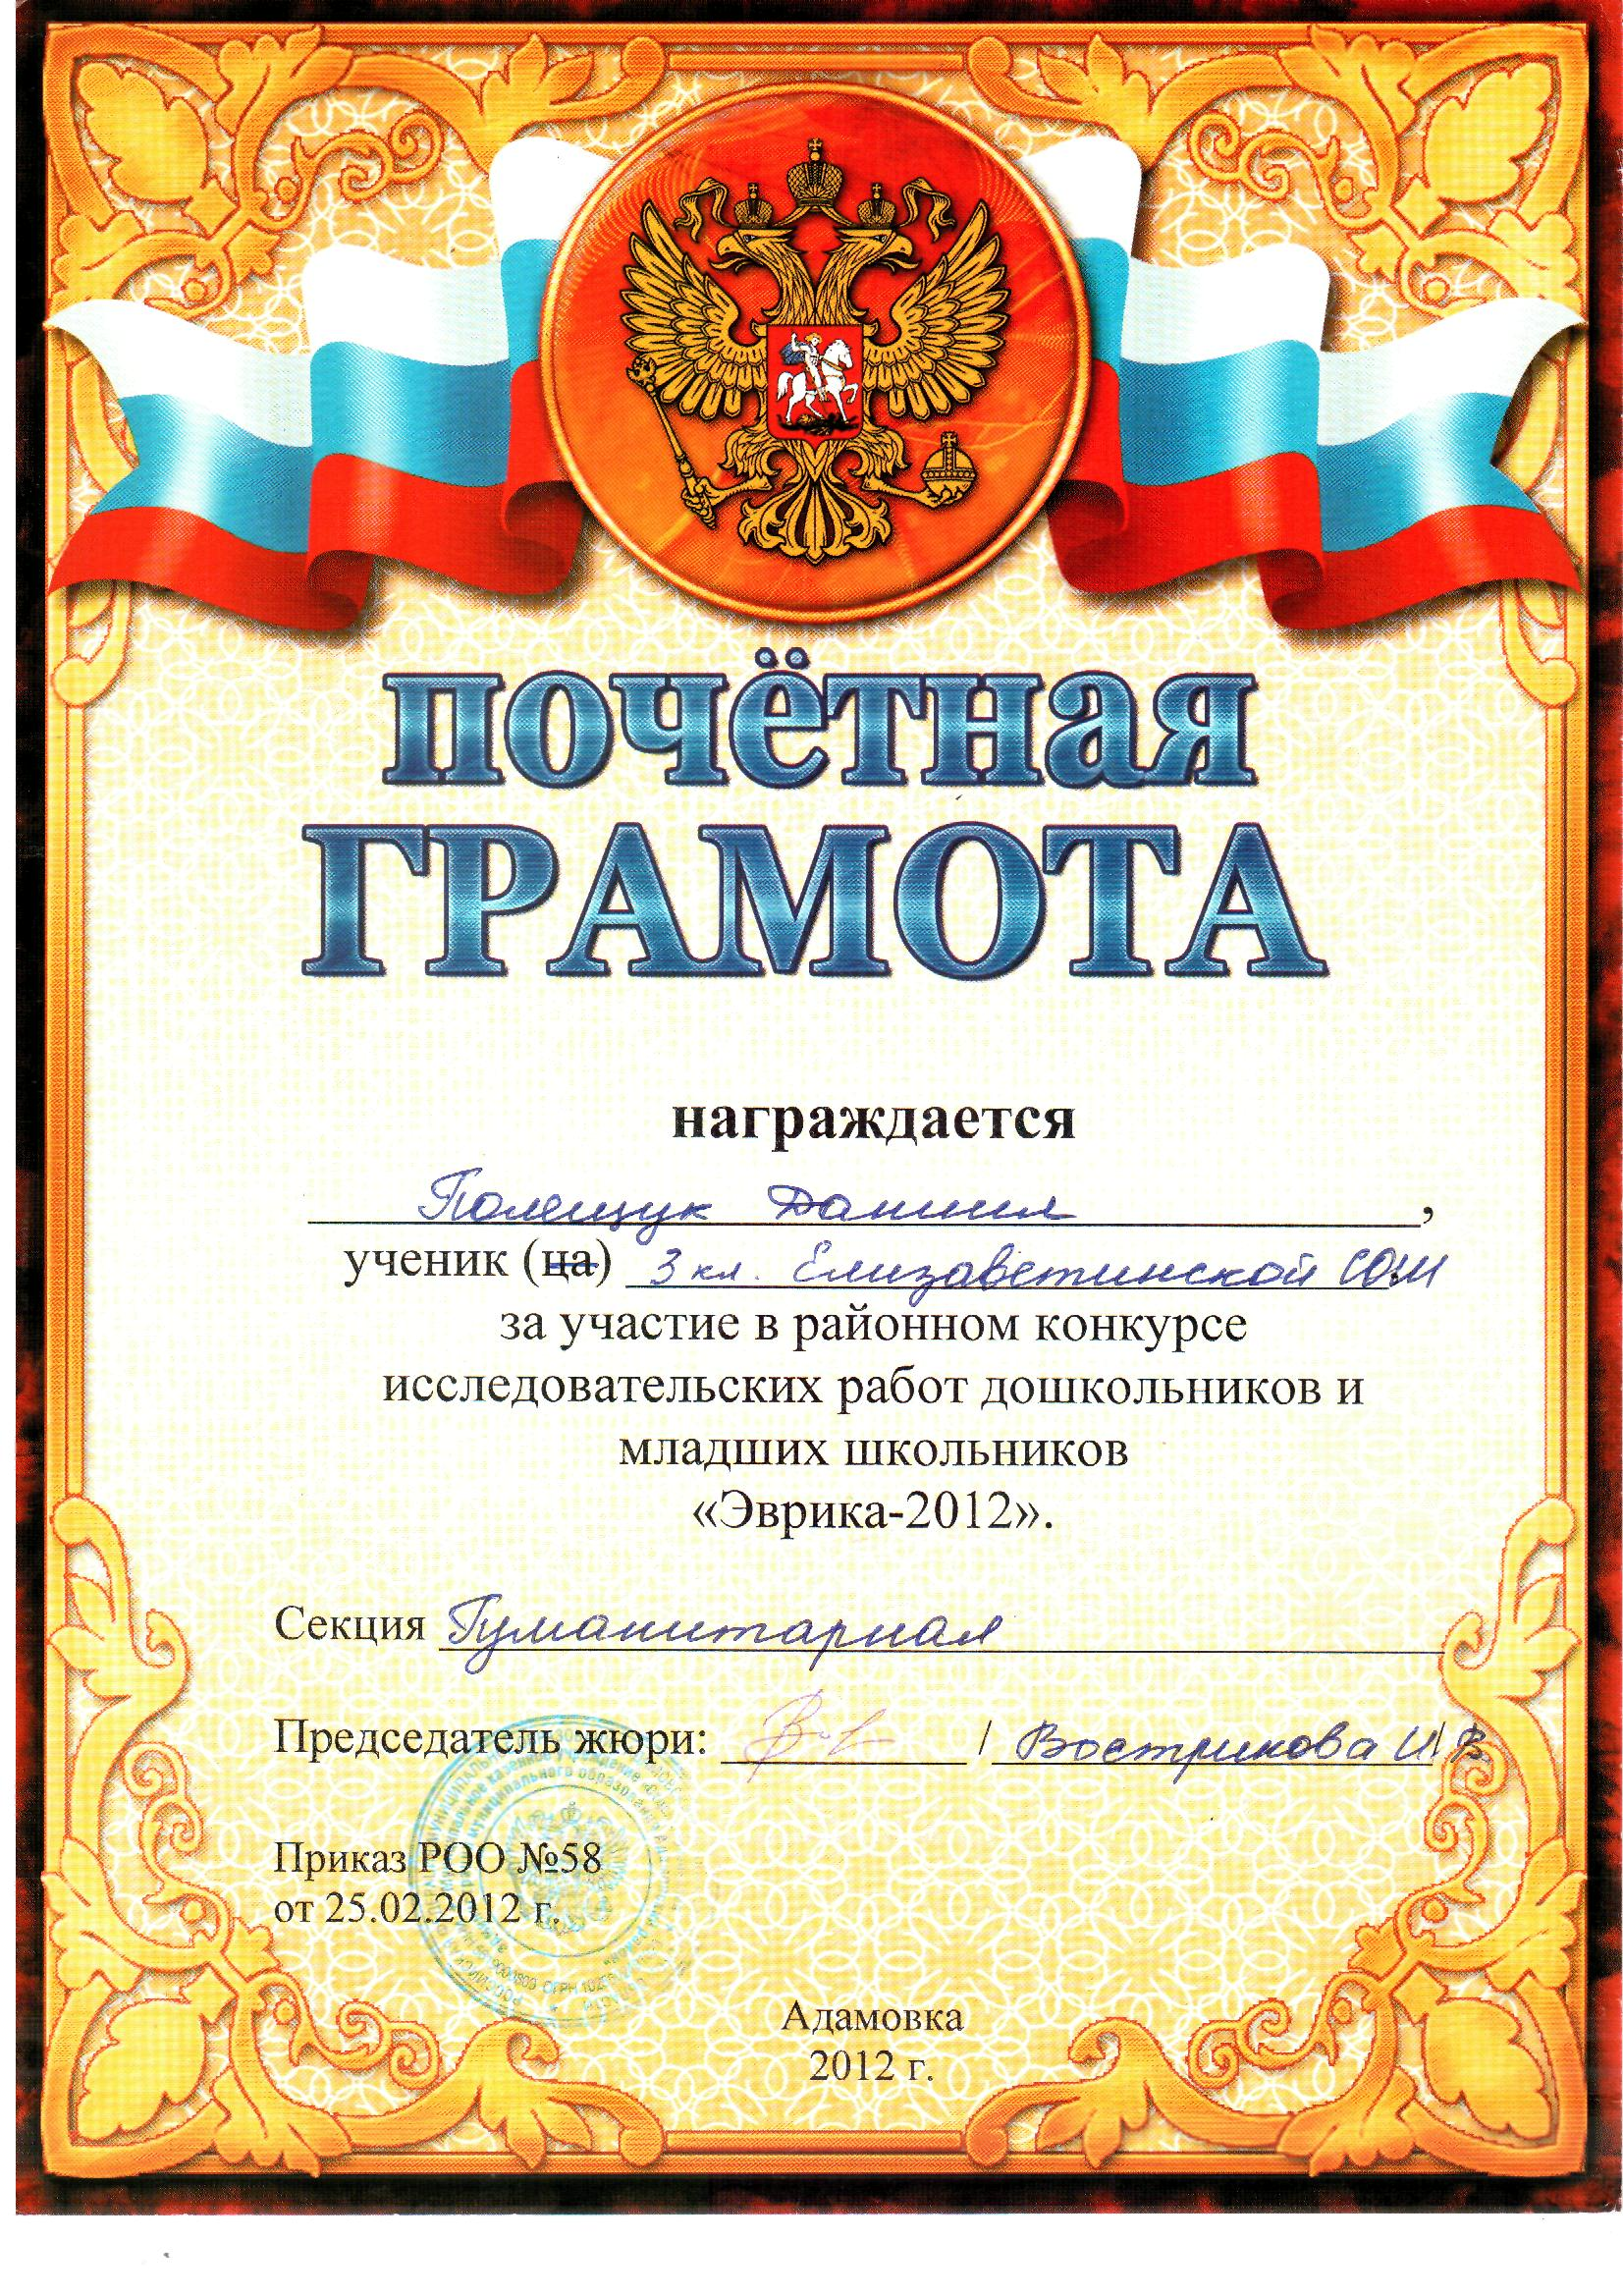 C:\Documents and Settings\User.USER-A1DBA845B9\Мои документы\Файлы Mail.Ru Агента\sergei_752@mail.ru\helios84@mail.ru\ков0006.jpg